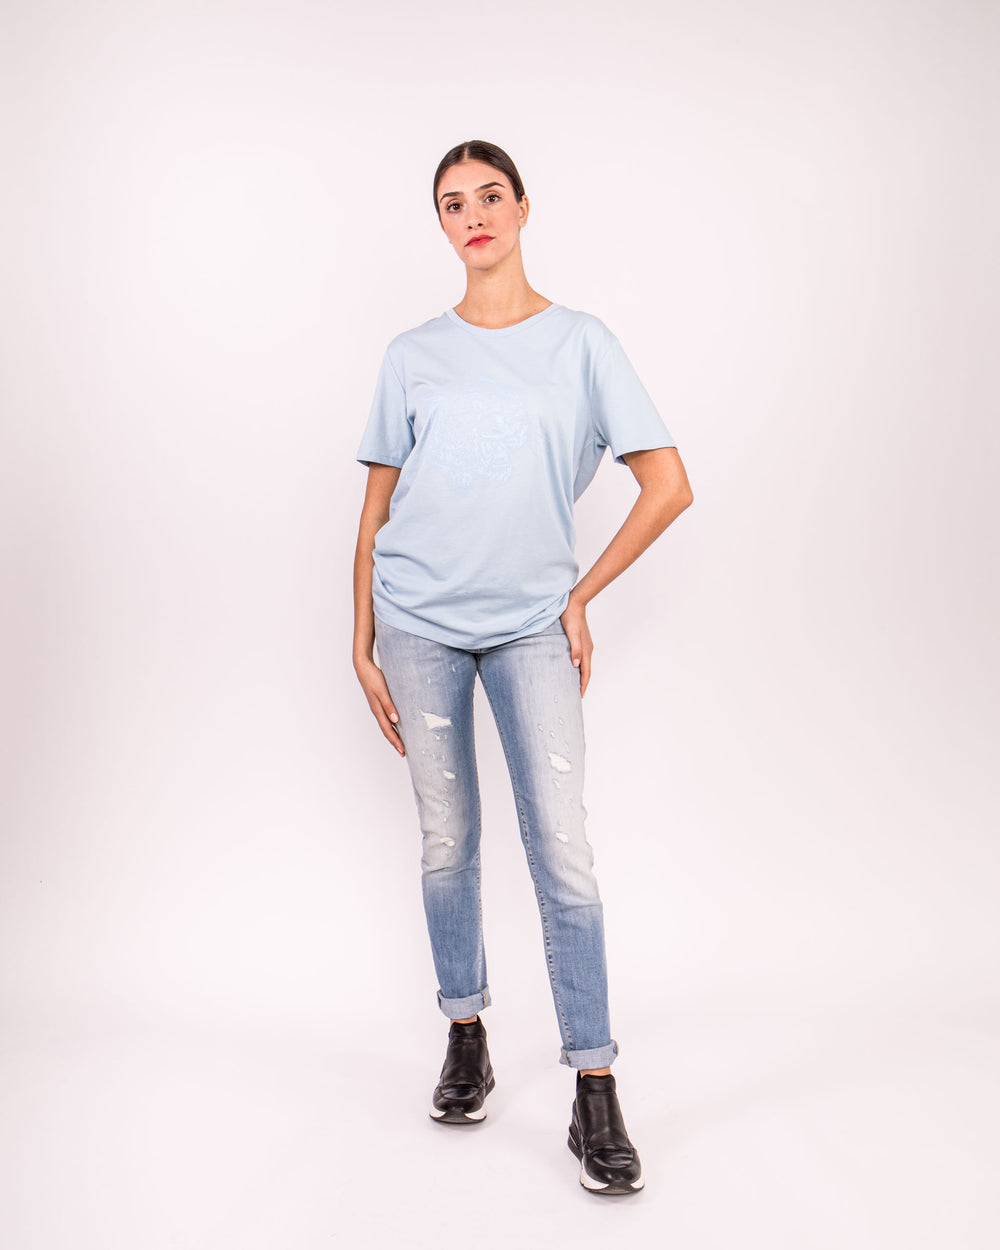 Oversized T-Shirt damen damen-T-Shirt Shirt Kurzarmshirt stylisch stylish lässig understatement Kleidung Sommer Sommer-Shirt leopard leo blau blue hellblau siebdruck design ton in ton druck basic understatement organic bio biologisch nachhaltig sustainable quality animal women